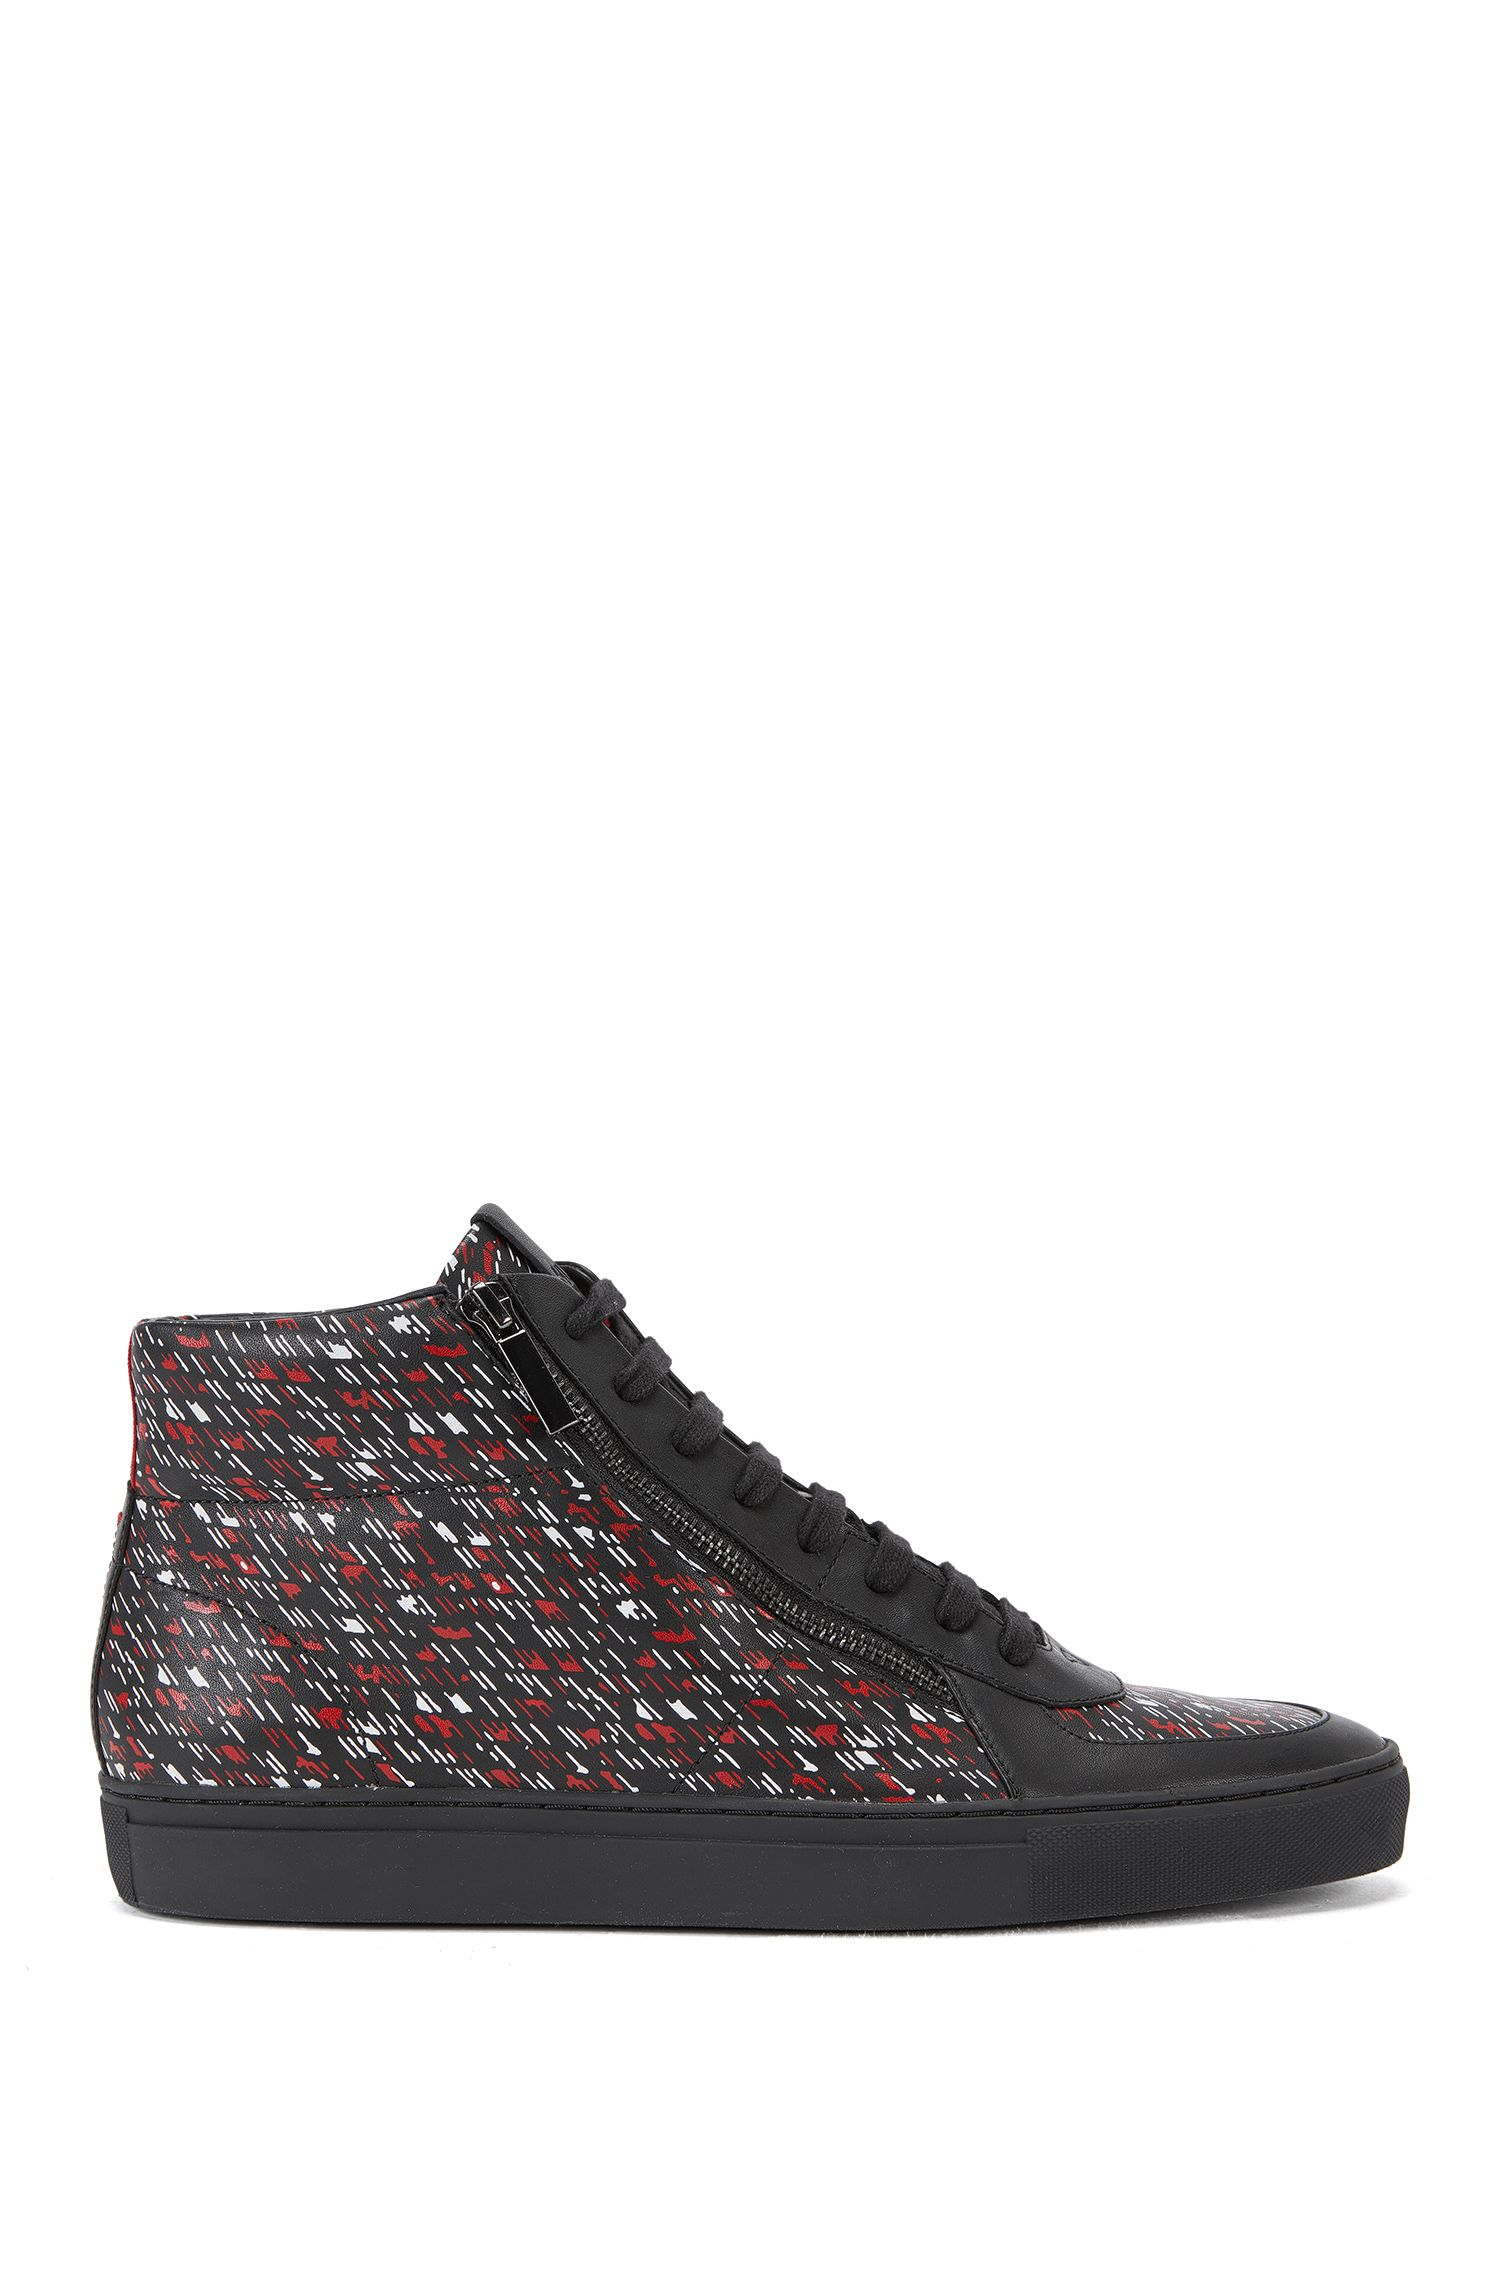 Printed Leather High Top Sneaker | Futurism Hito Pr